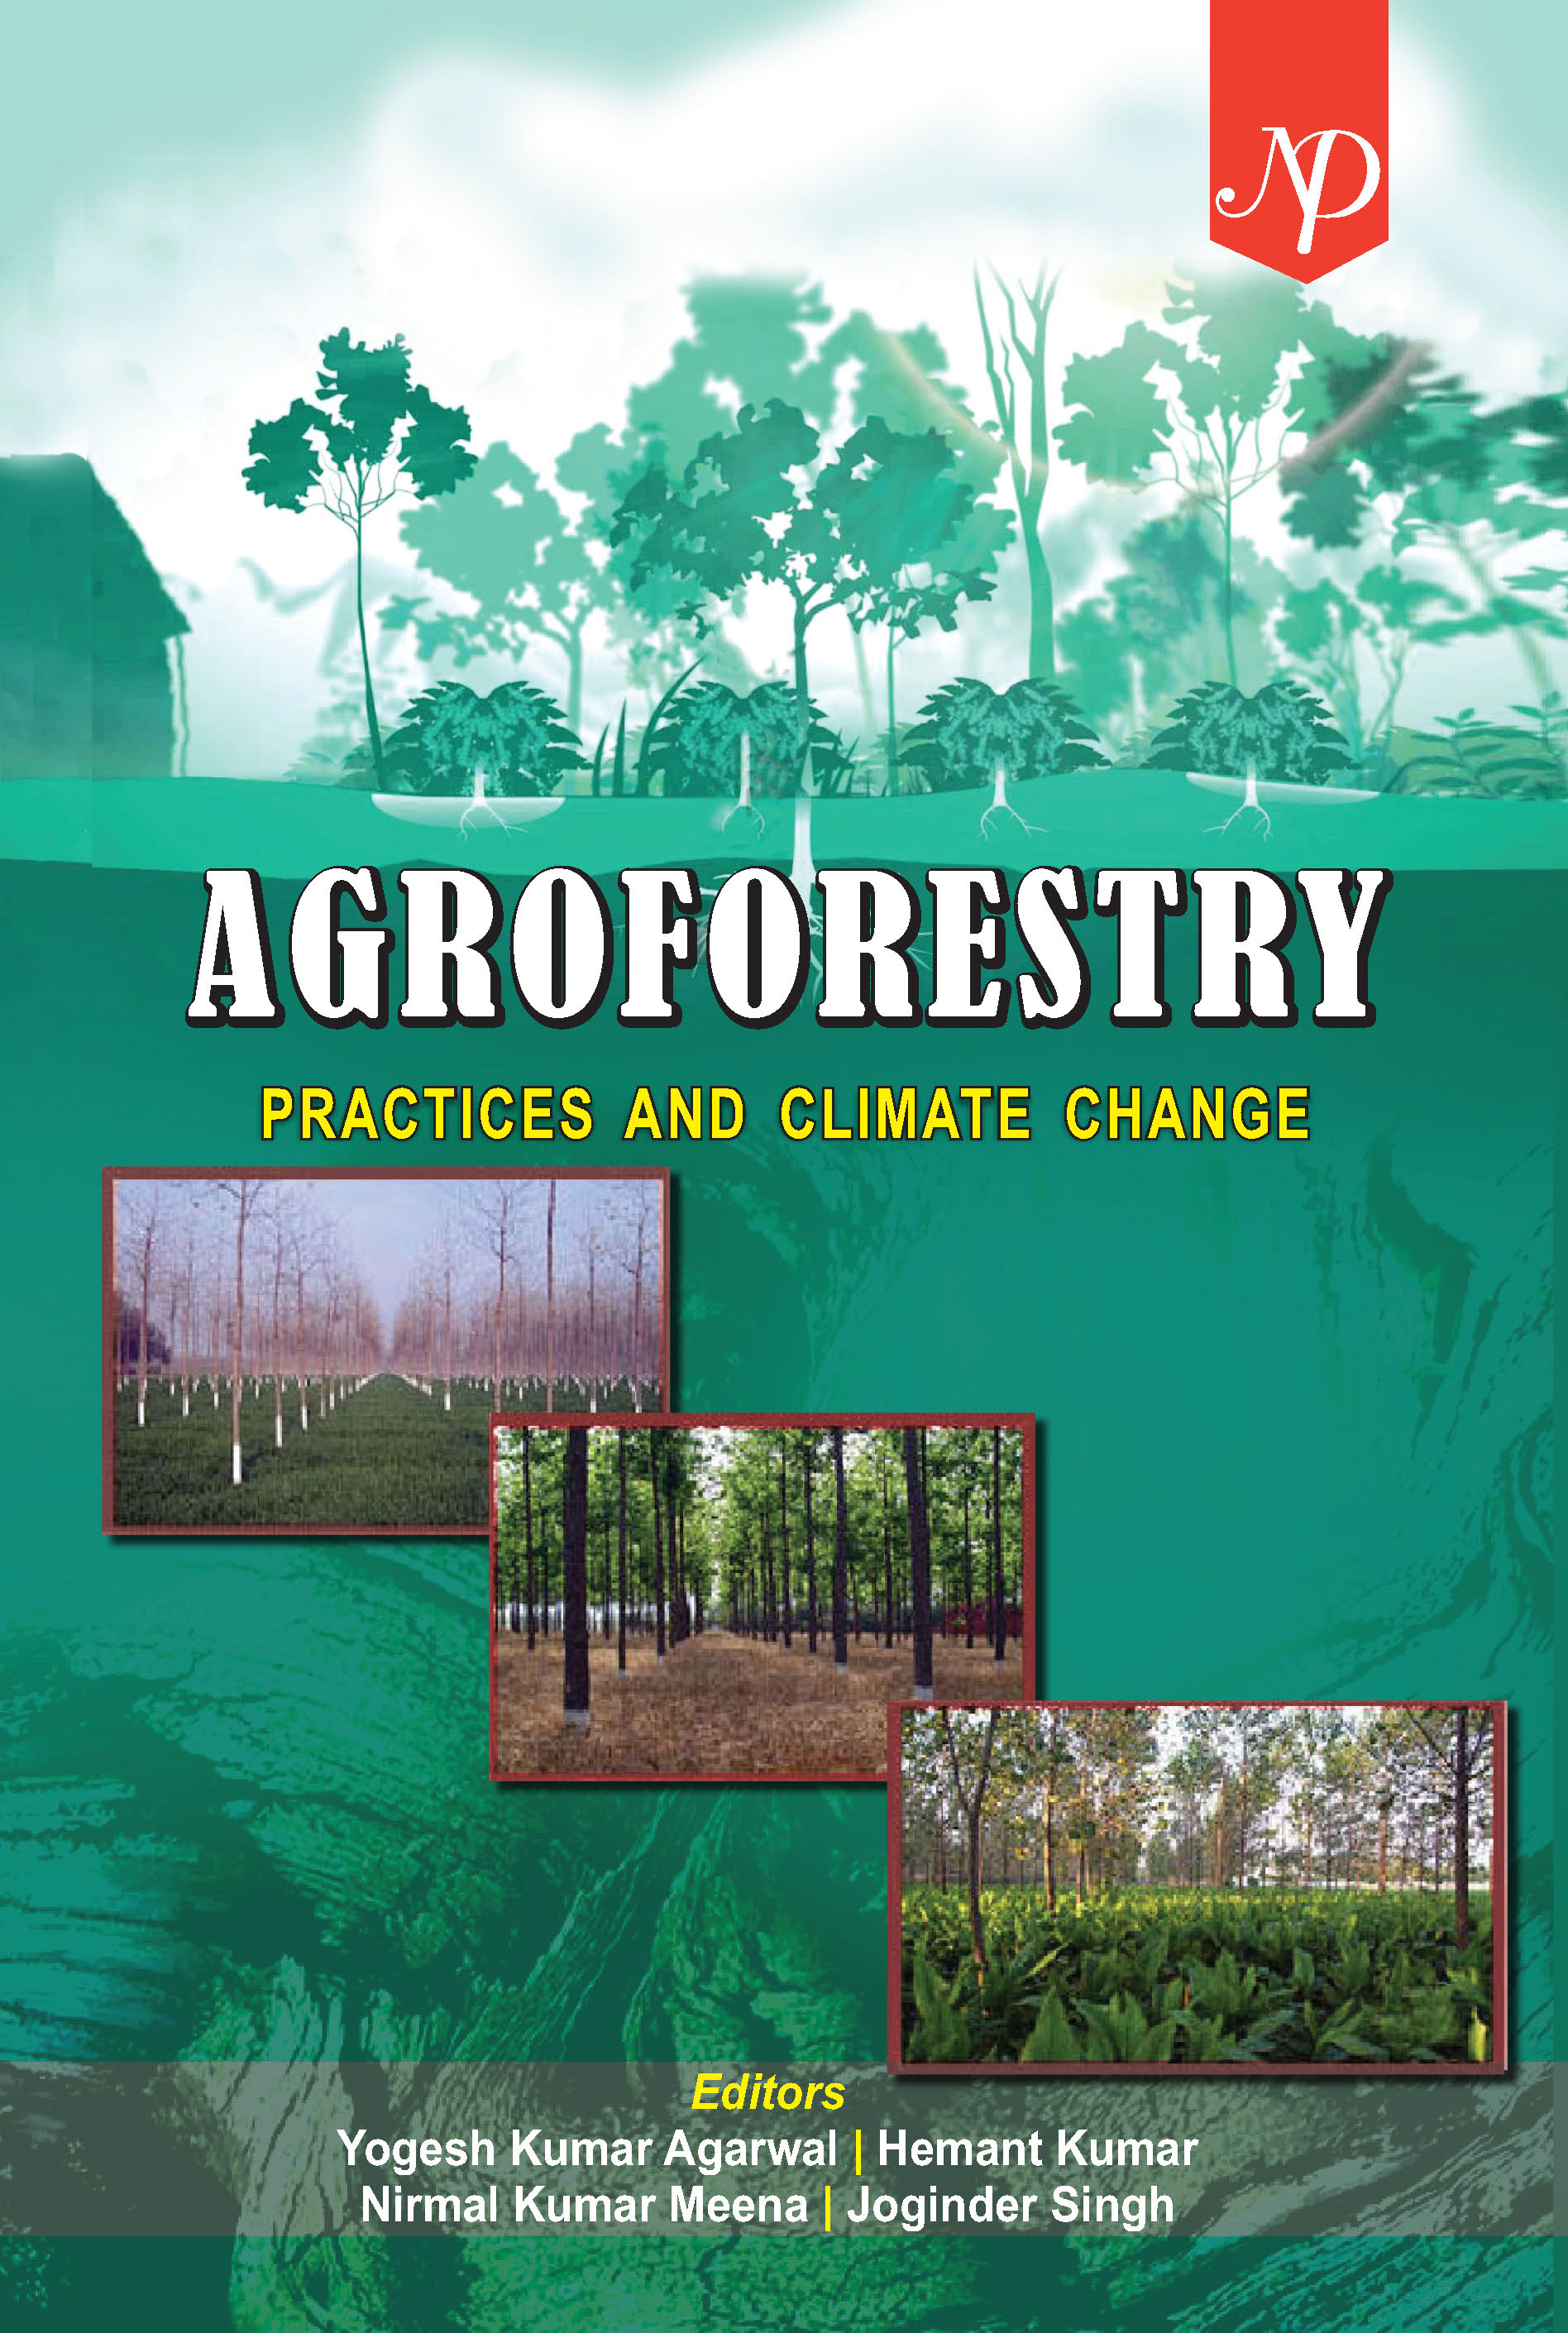 Agroforestry Practices and Climate Change